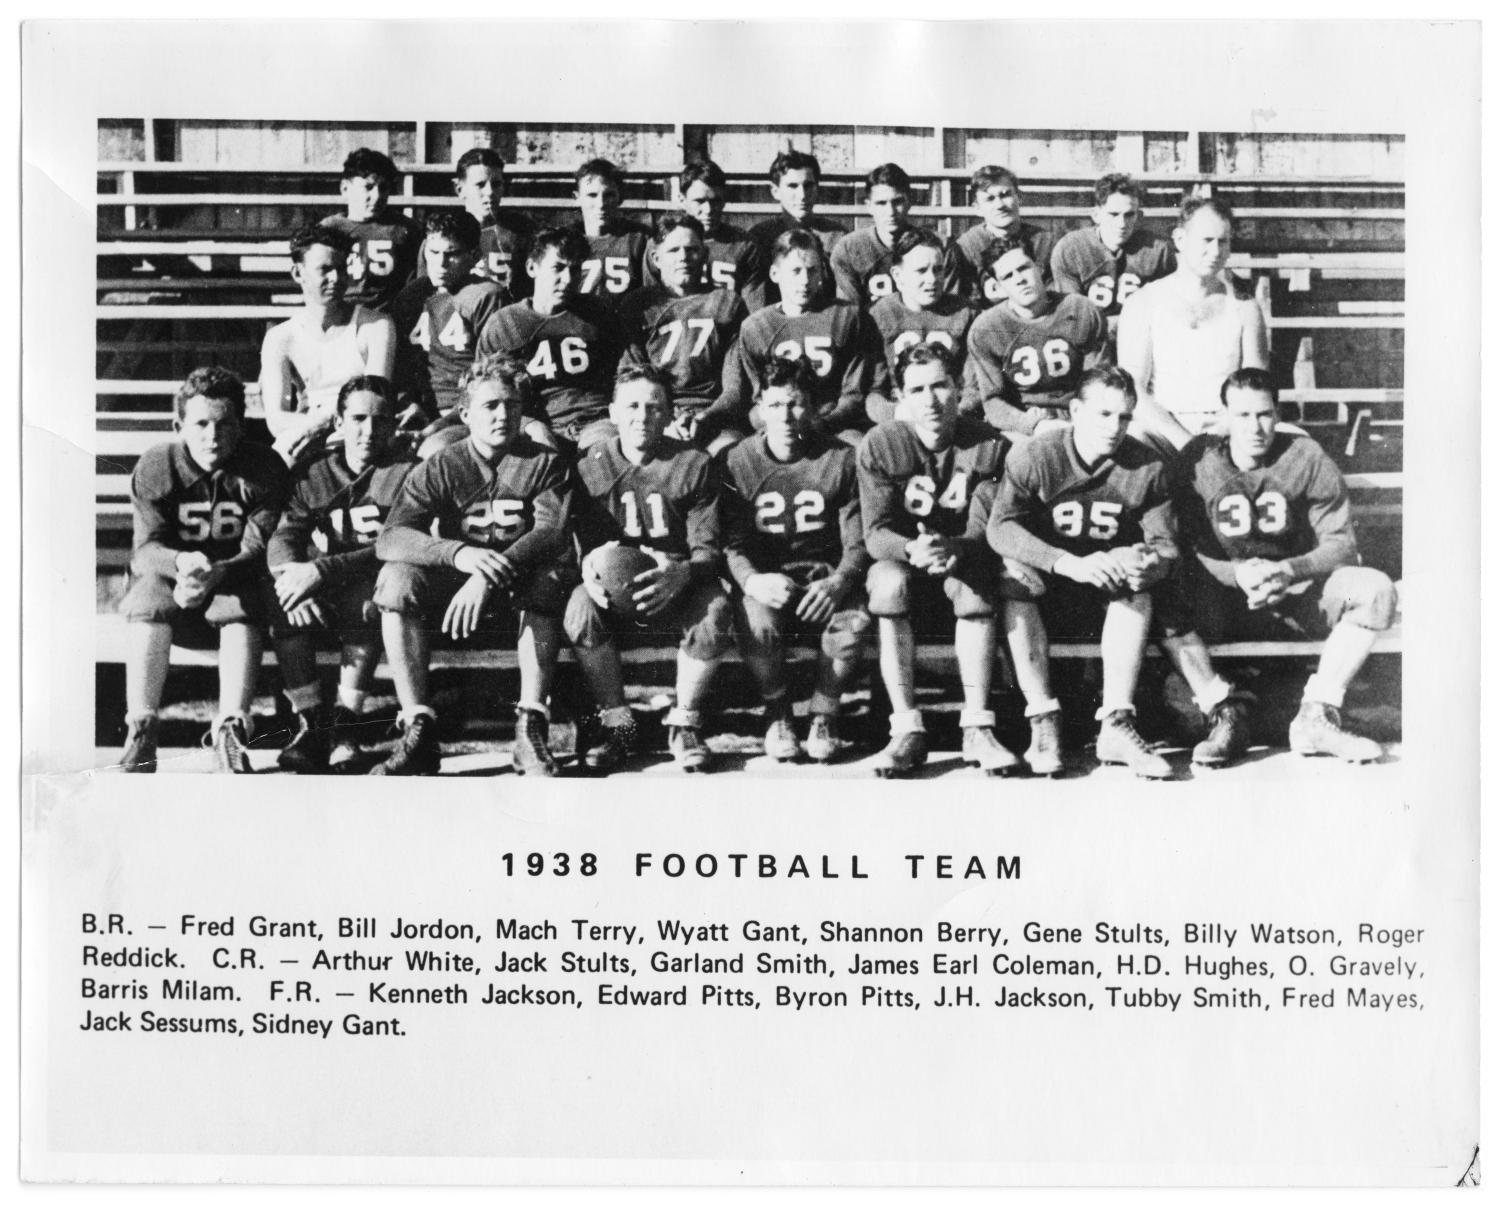 """1938 Richardson High School Football Team, Photograph of the 1938 Richardson High School football team. They are seated in bleachers, and posing in three rows. All but two boys are wearing football uniforms; one boy in the center-front row is holding a football. Text below the image says """"1938 Football Team,"""" and has each of their names listed.,"""